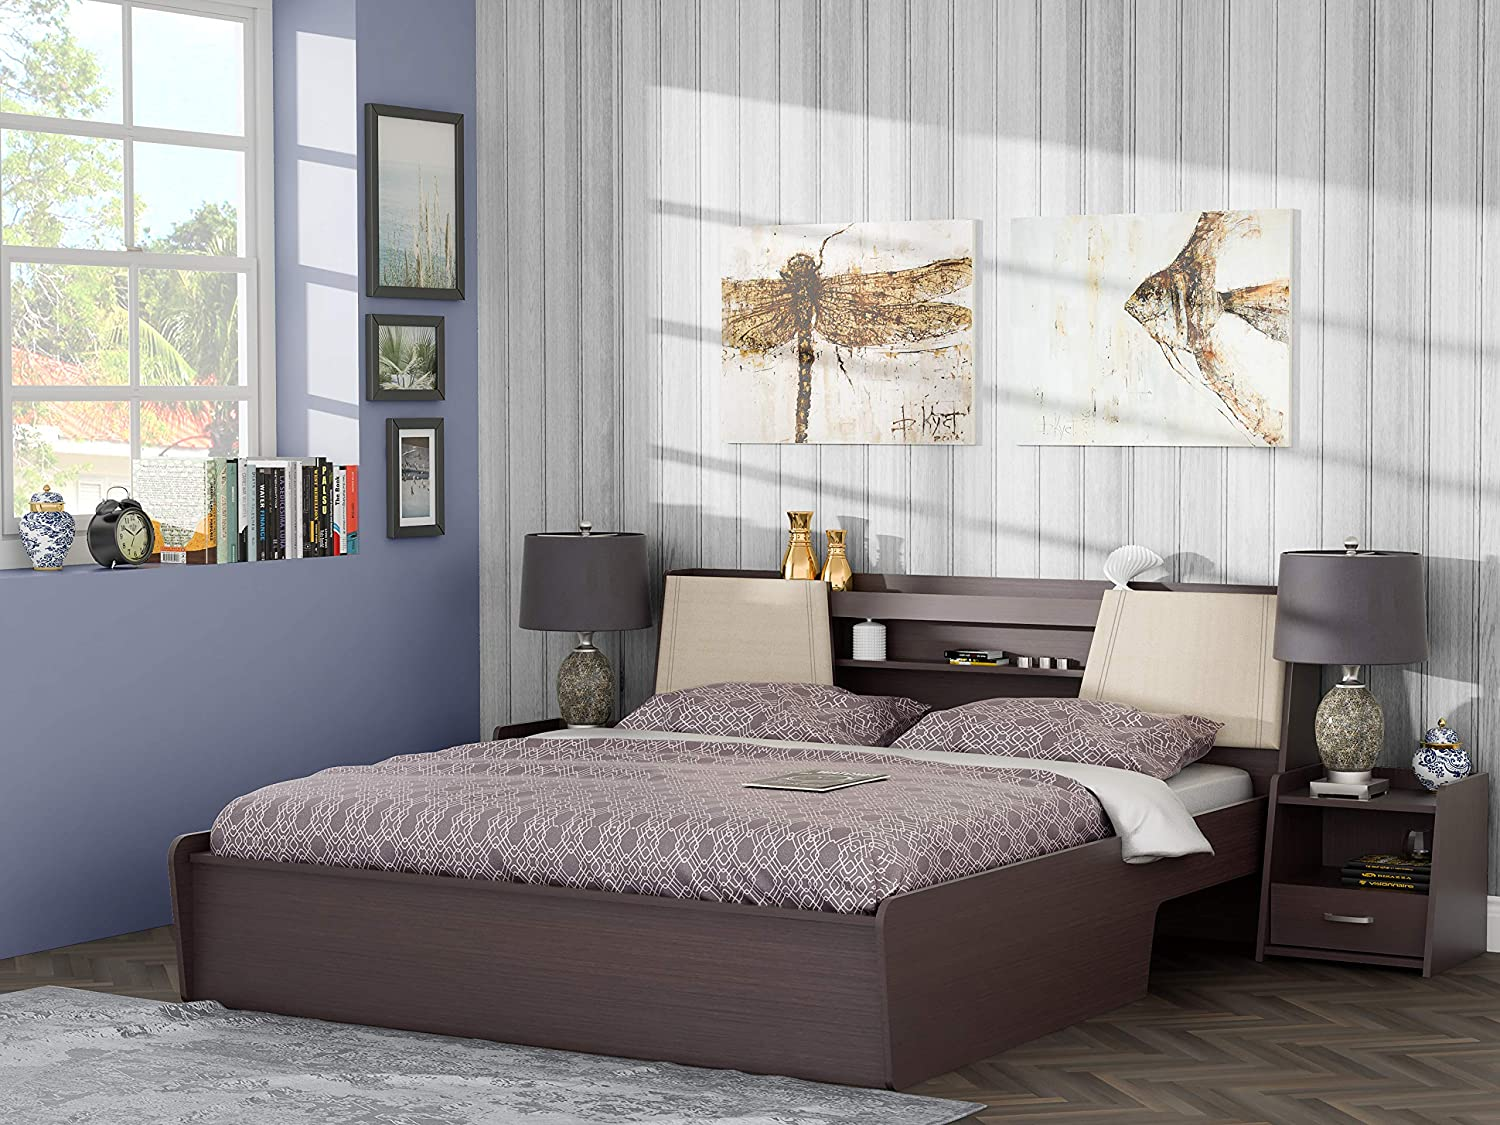 Stylespa Prudent King Size Engineered Wood Bed With